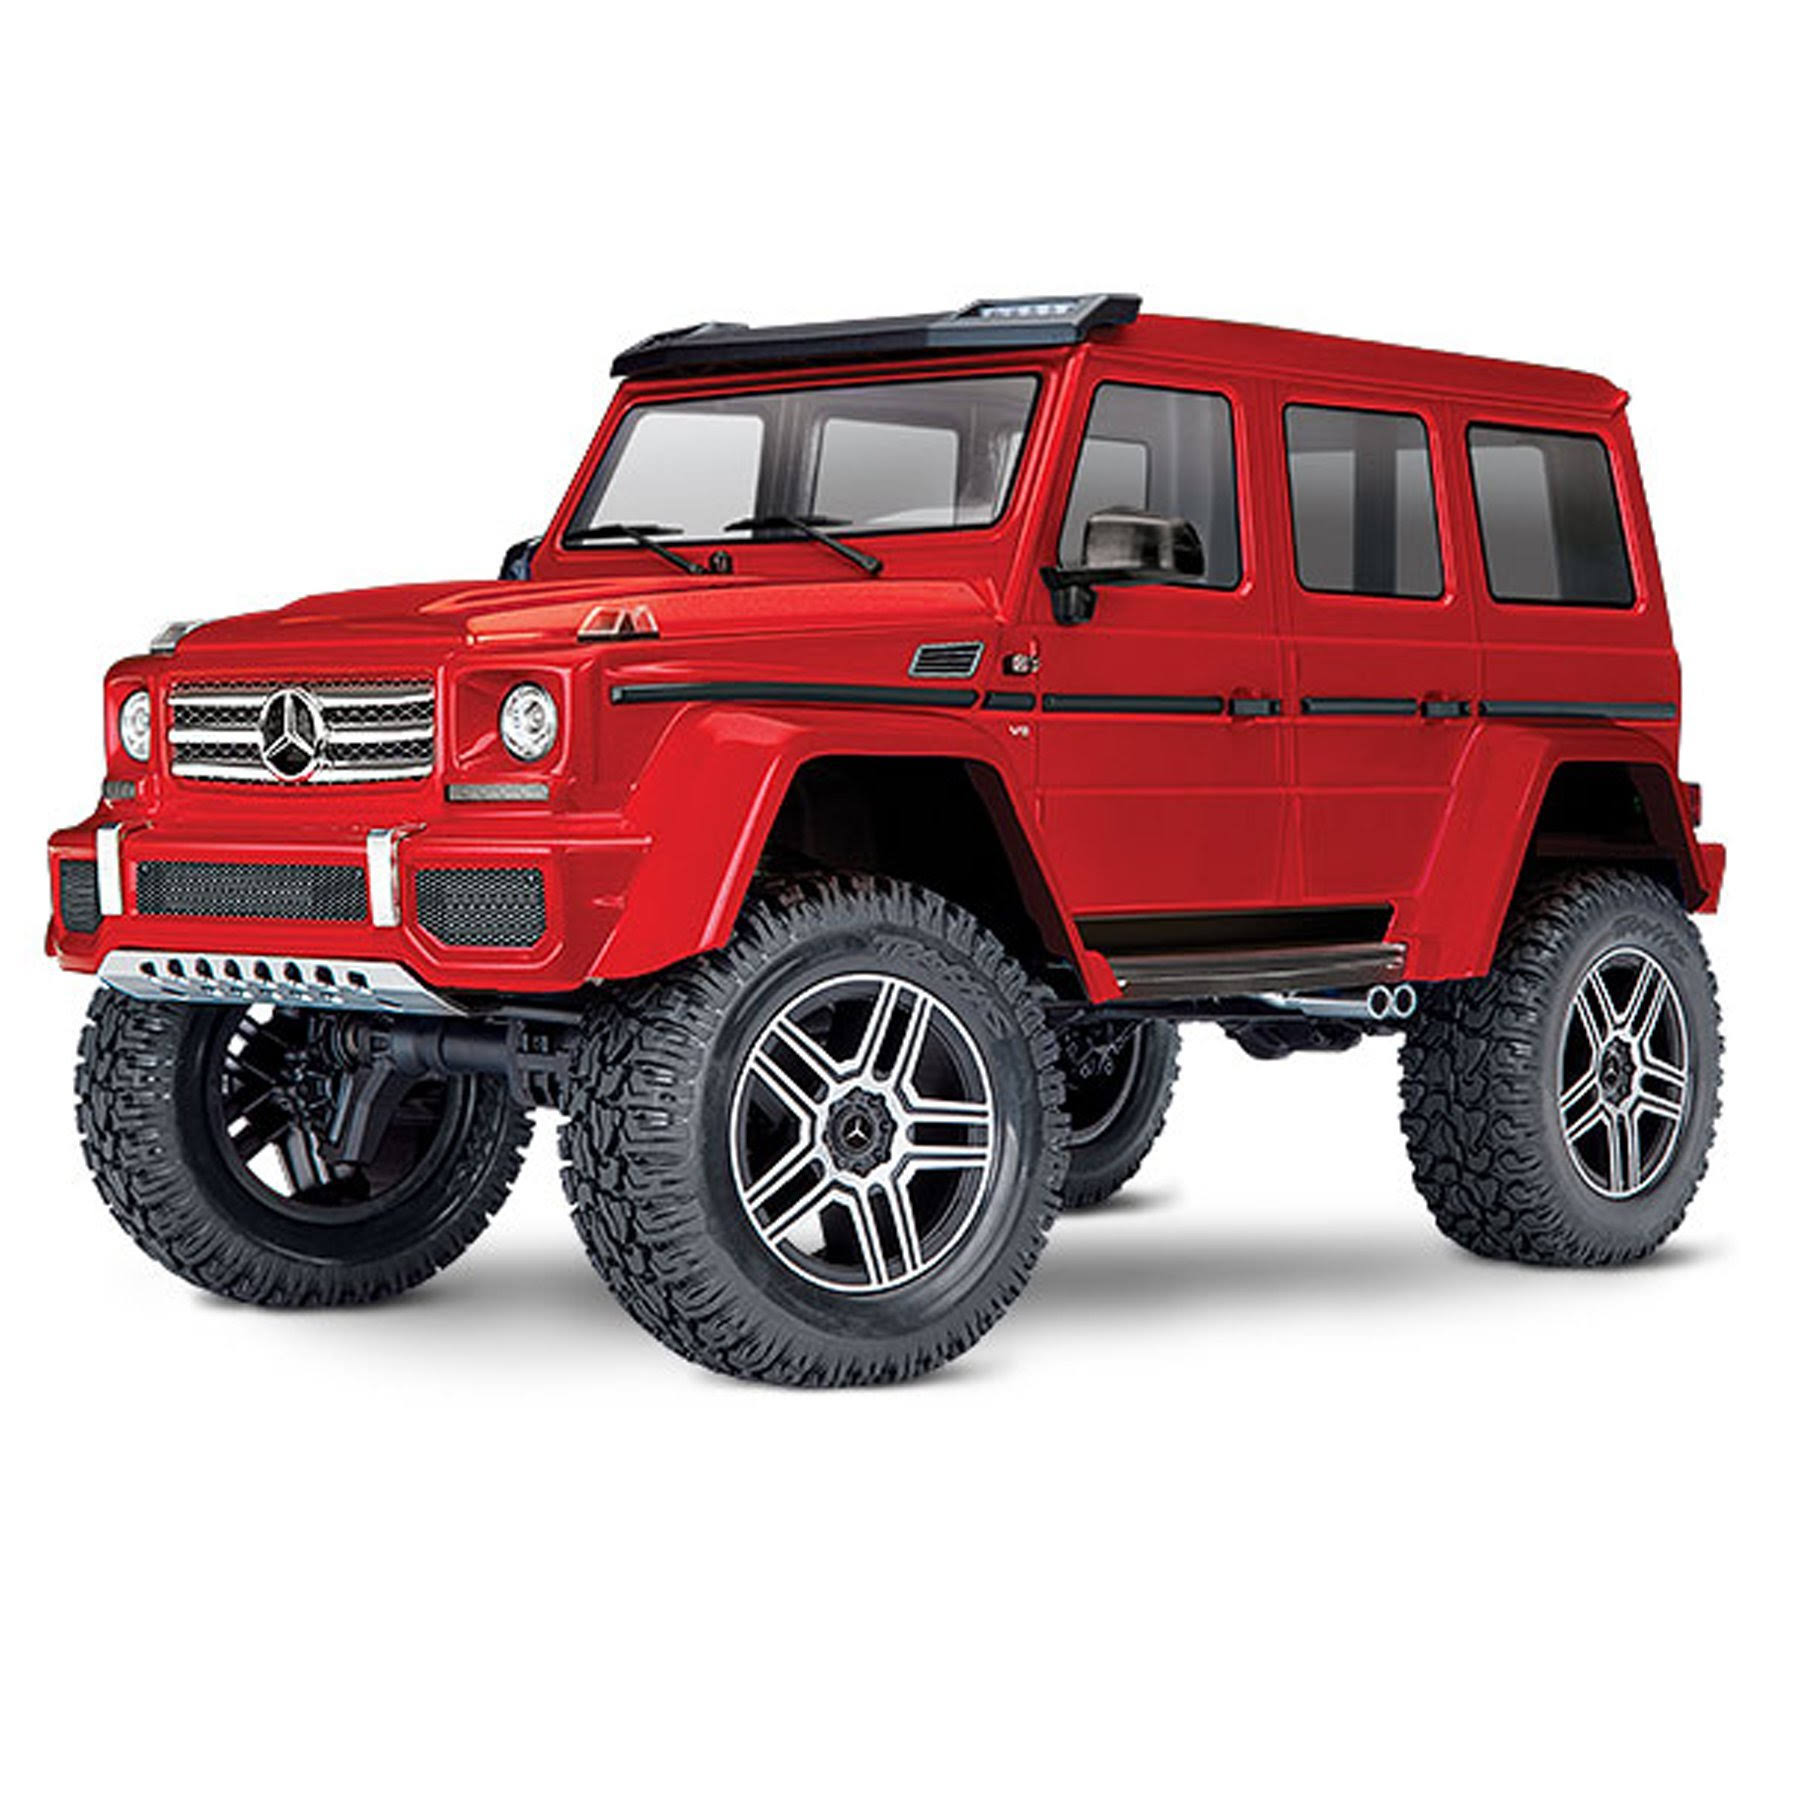 Traxxas 82096-4 TRX-4 Trail Crawler Mercedes-Benz G500 4X4 Model Kit - Red